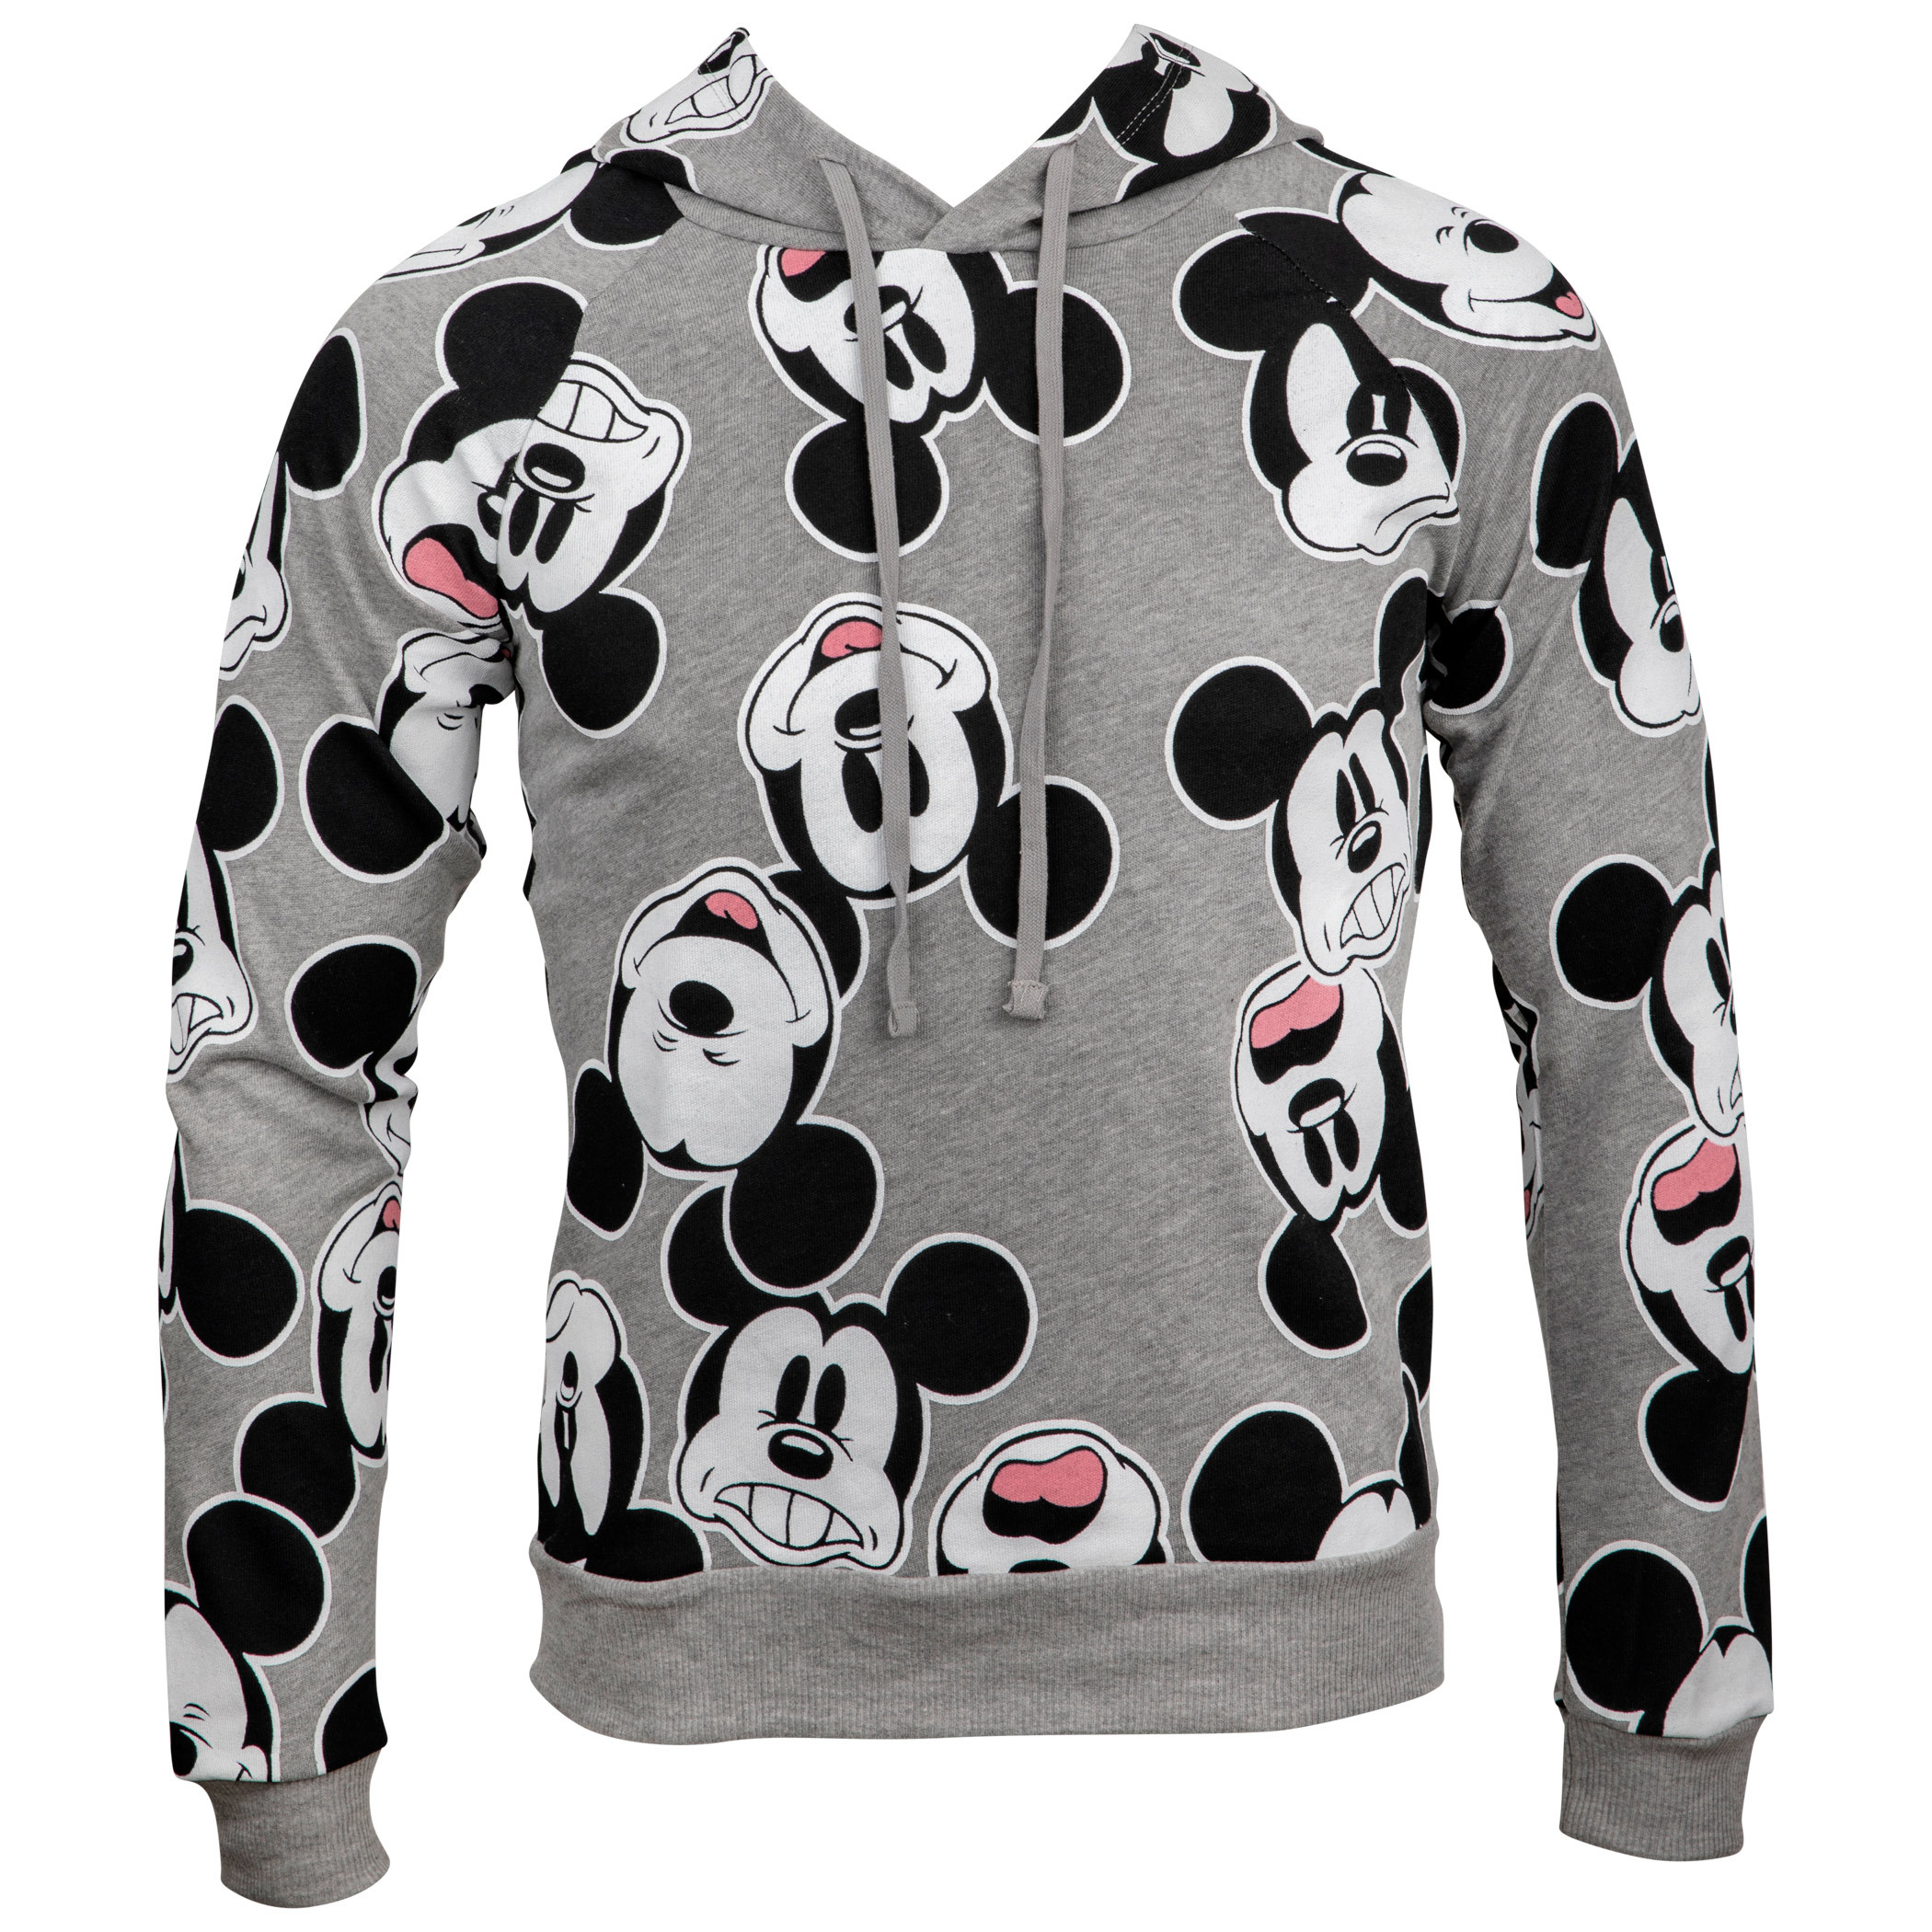 Disney Mickey Mouse Heads All Over Print Women's Fitted Hoodie